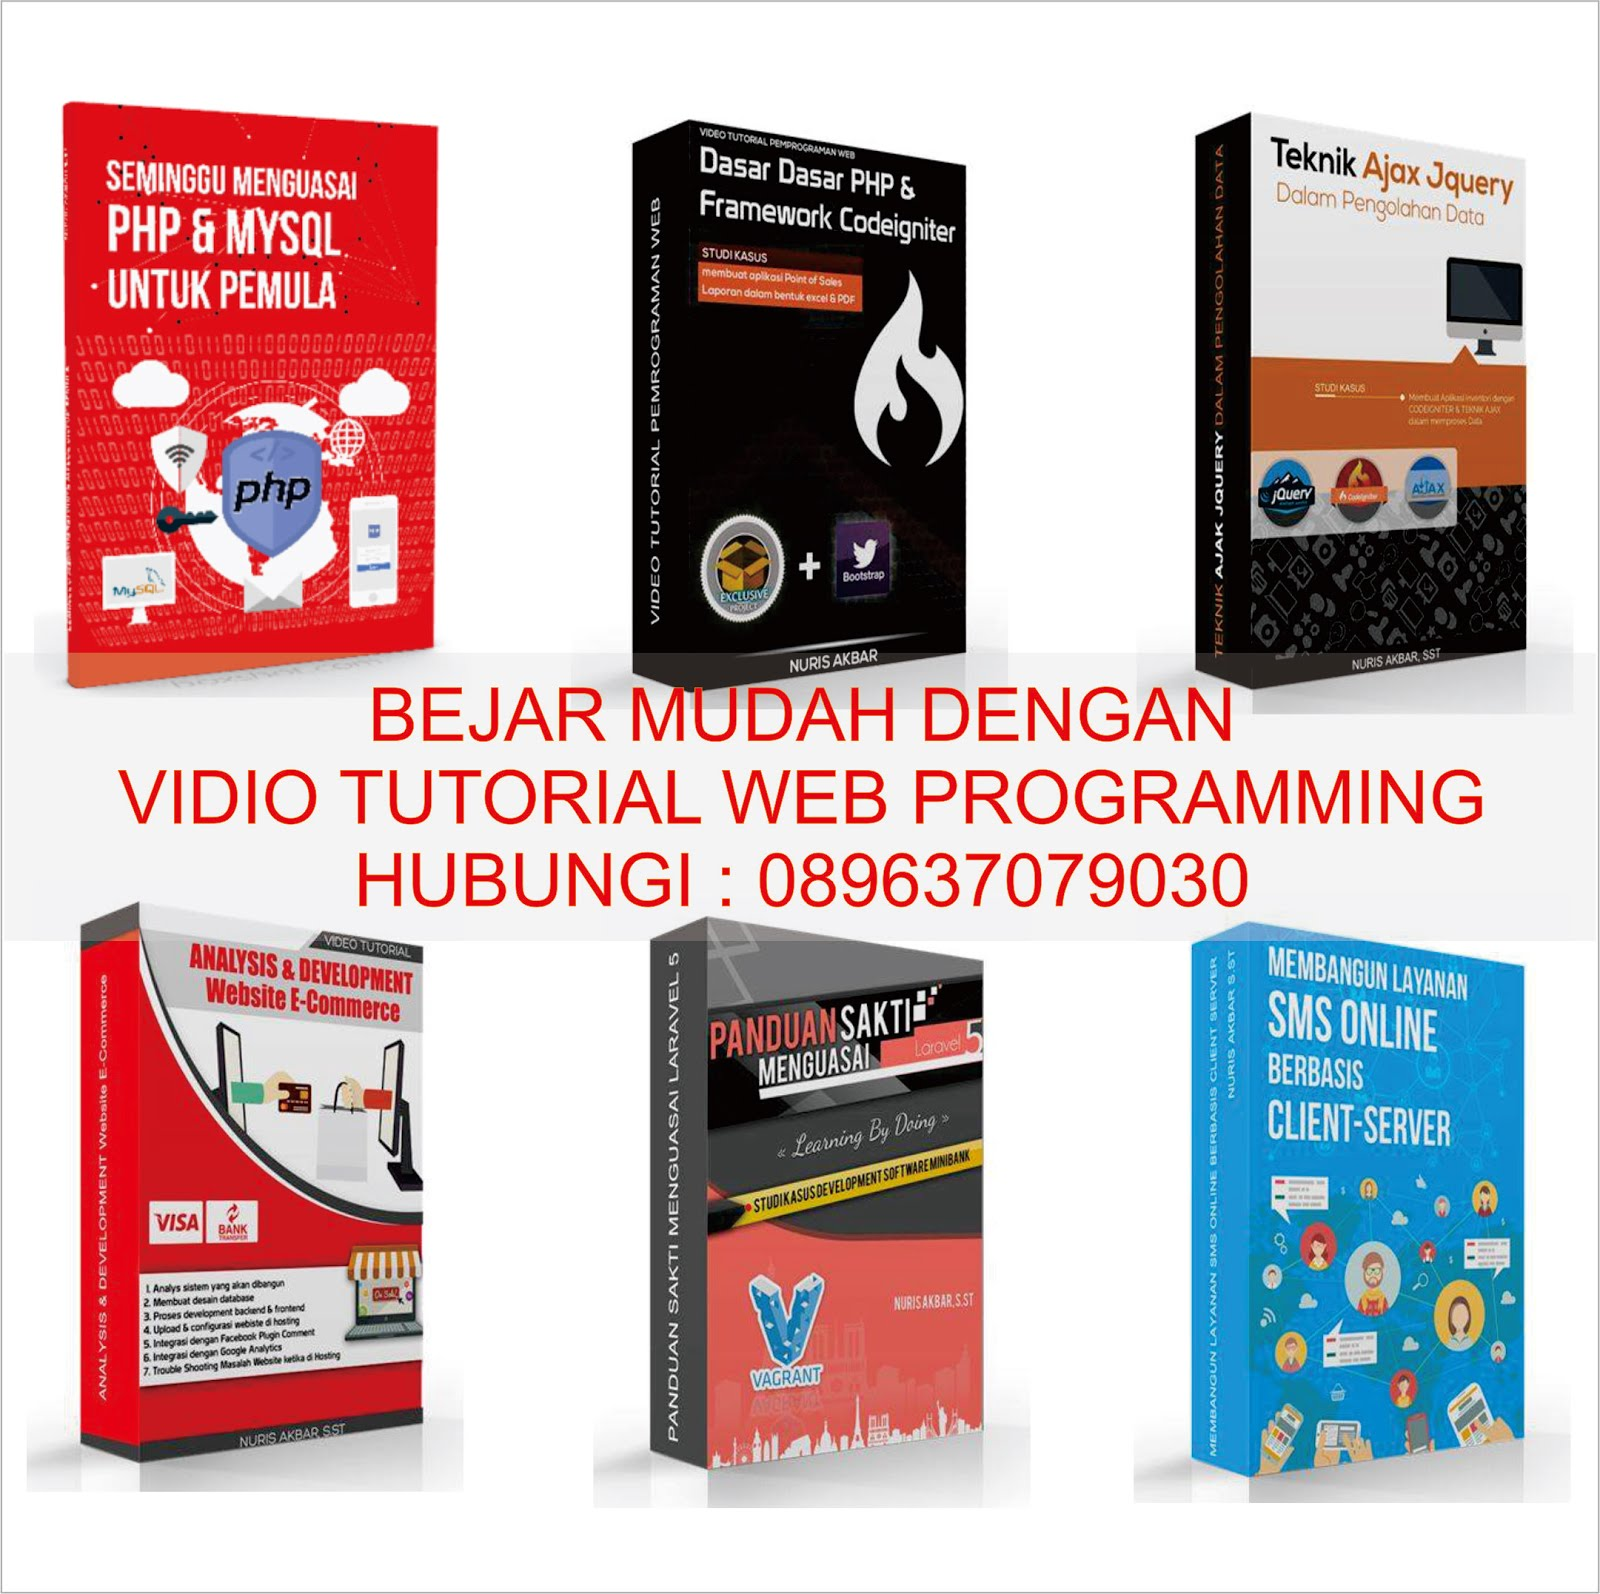 Vidio Tutorial